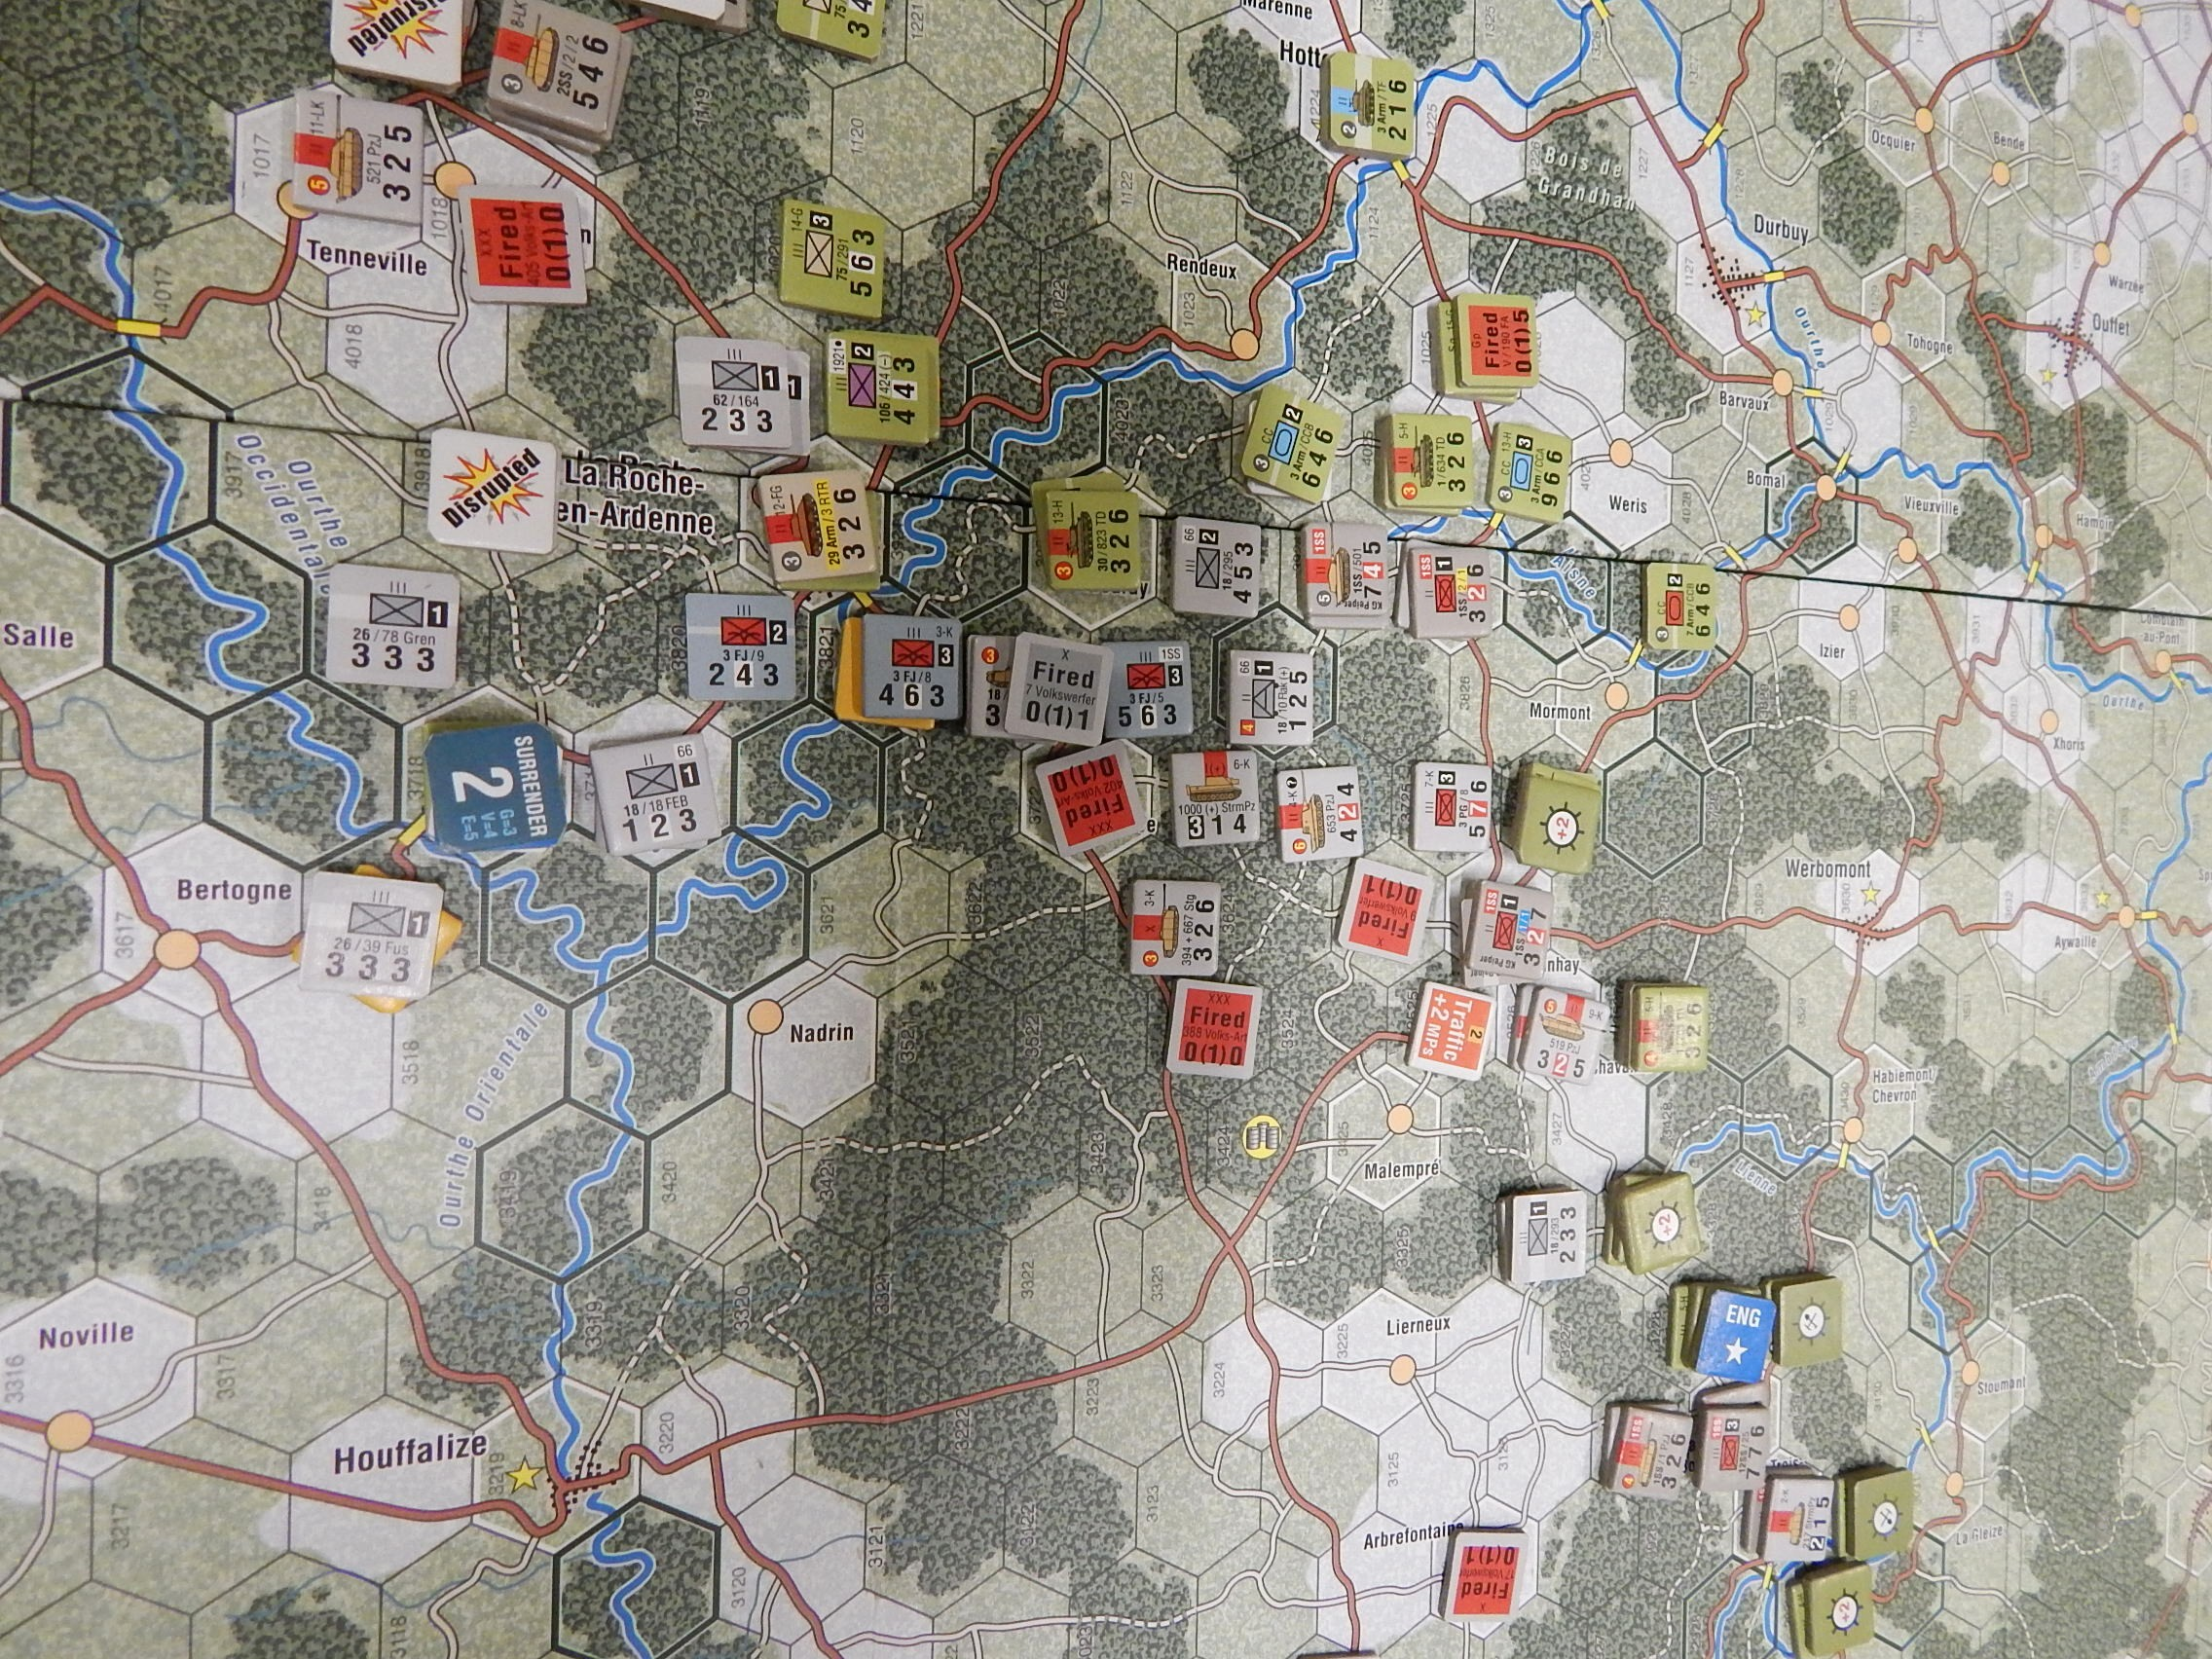 https://i.ibb.co/fXn0Rm2/Ardennes-44-End-of-Play-3.jpg